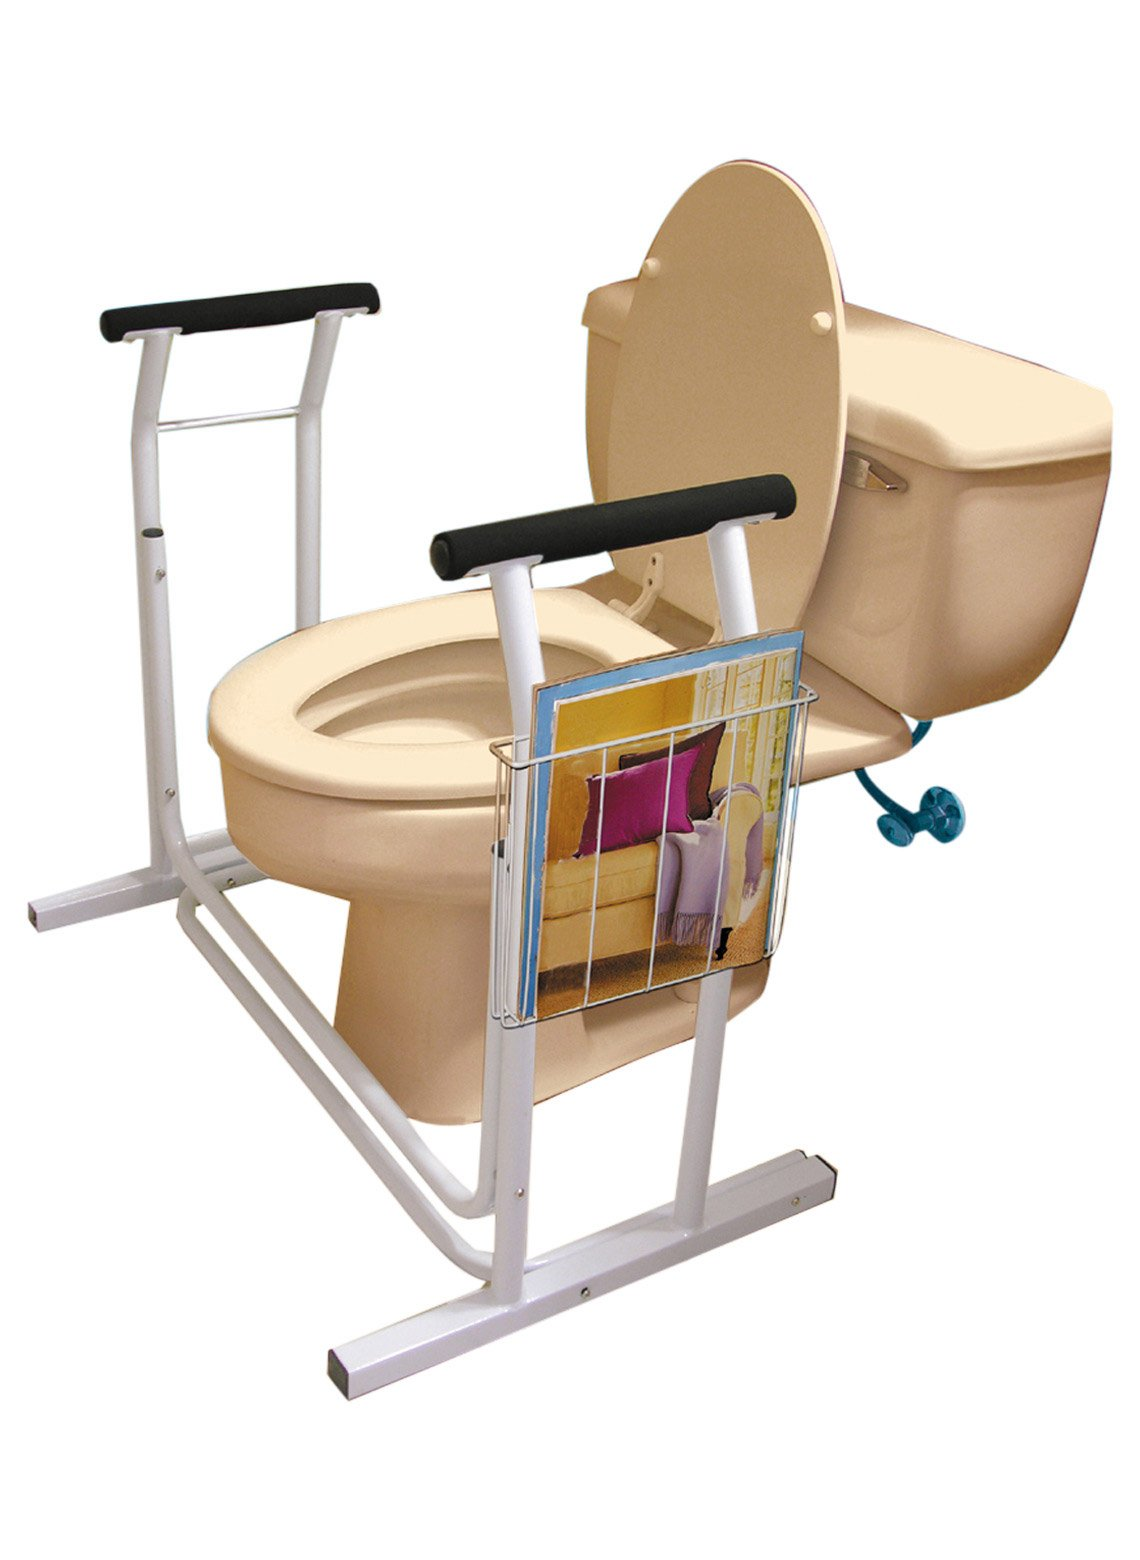 North American Health and Wellness - JB4349 Deluxe Toilet Safety Support by North American Health + Wellness